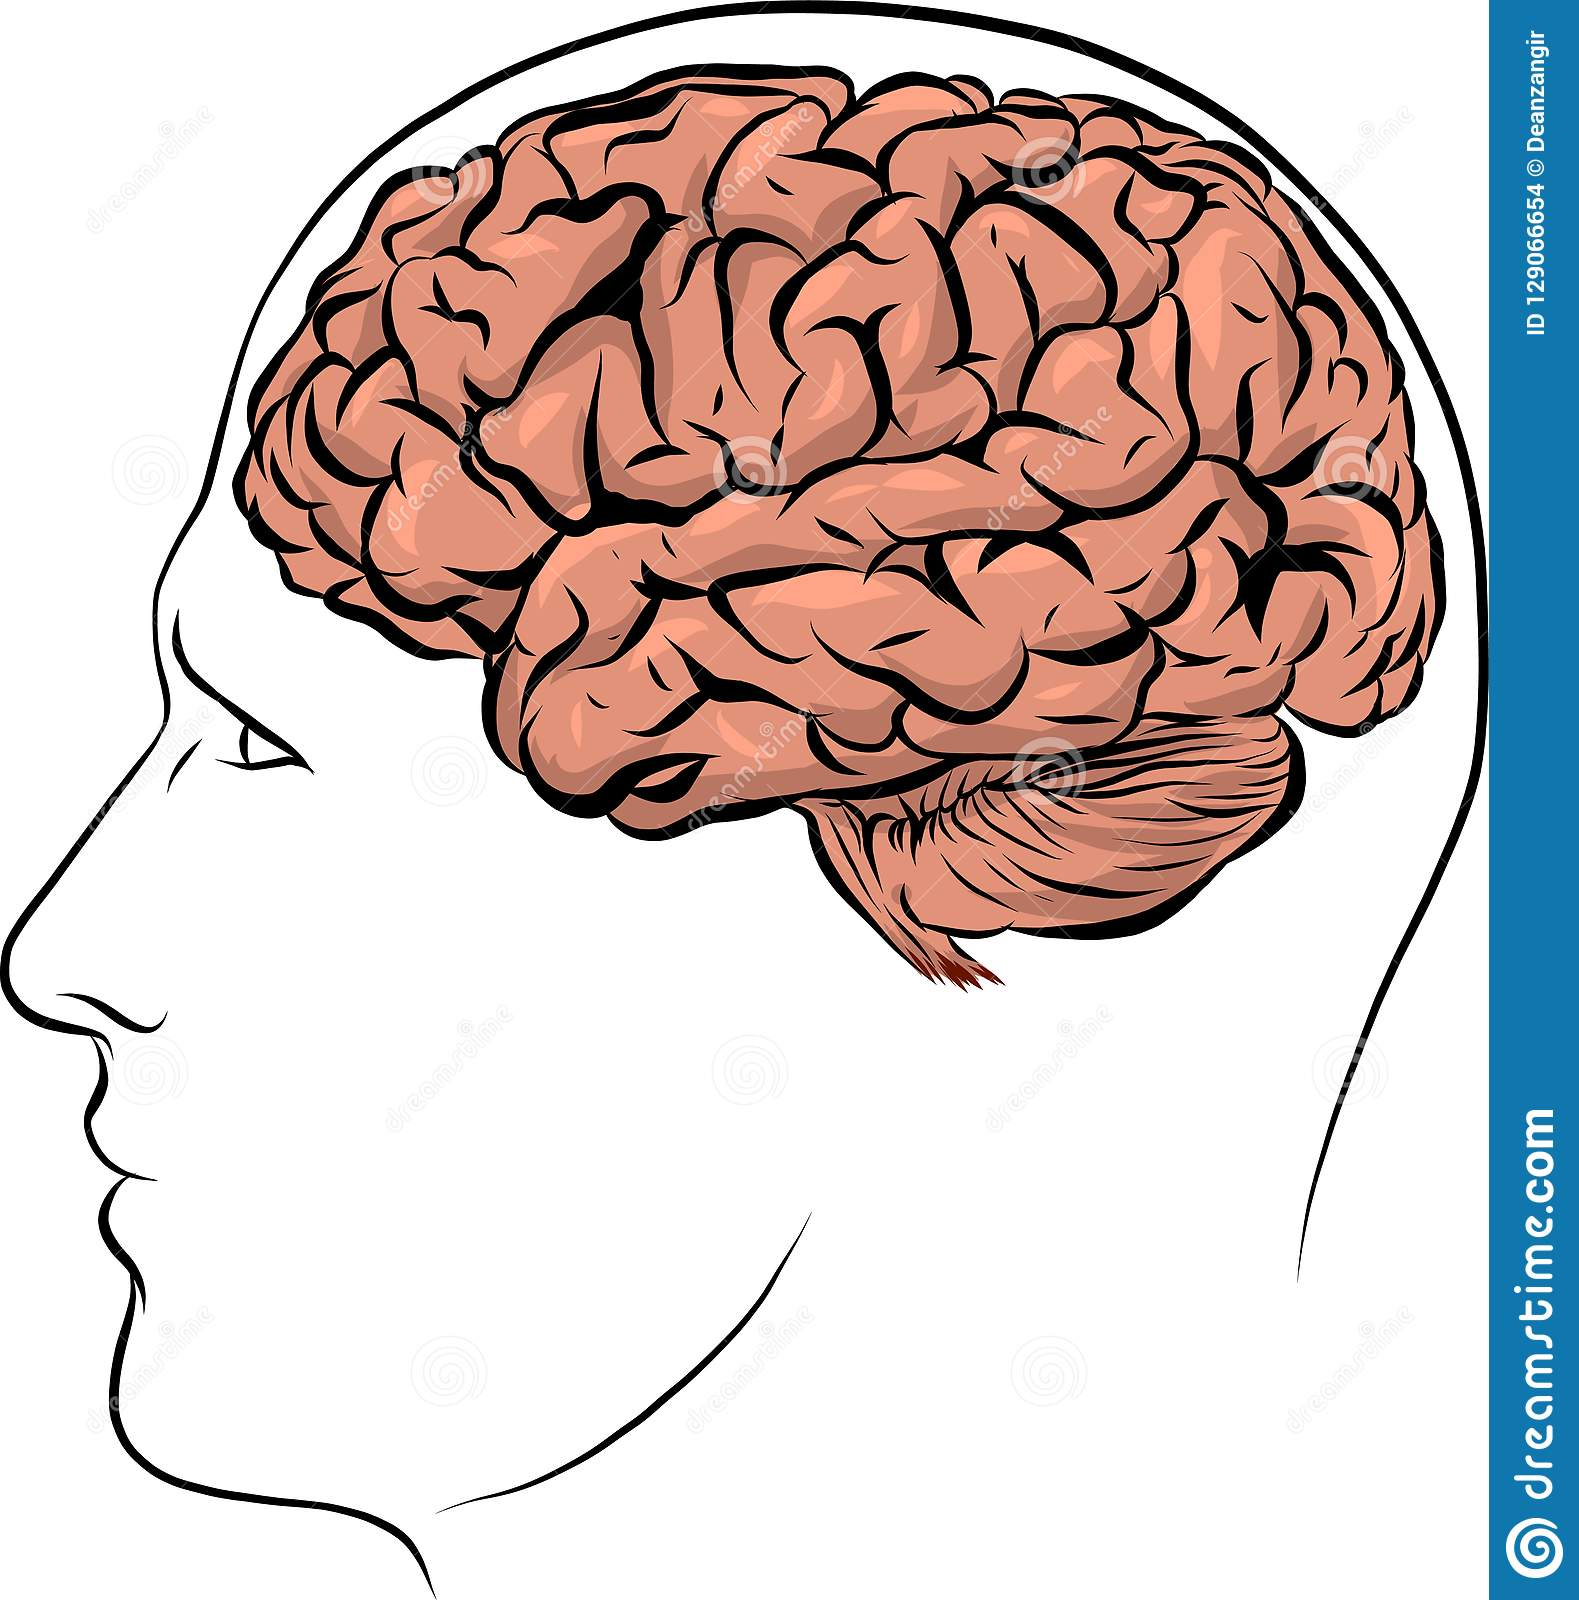 hight resolution of human face brown silhouette with brain inside